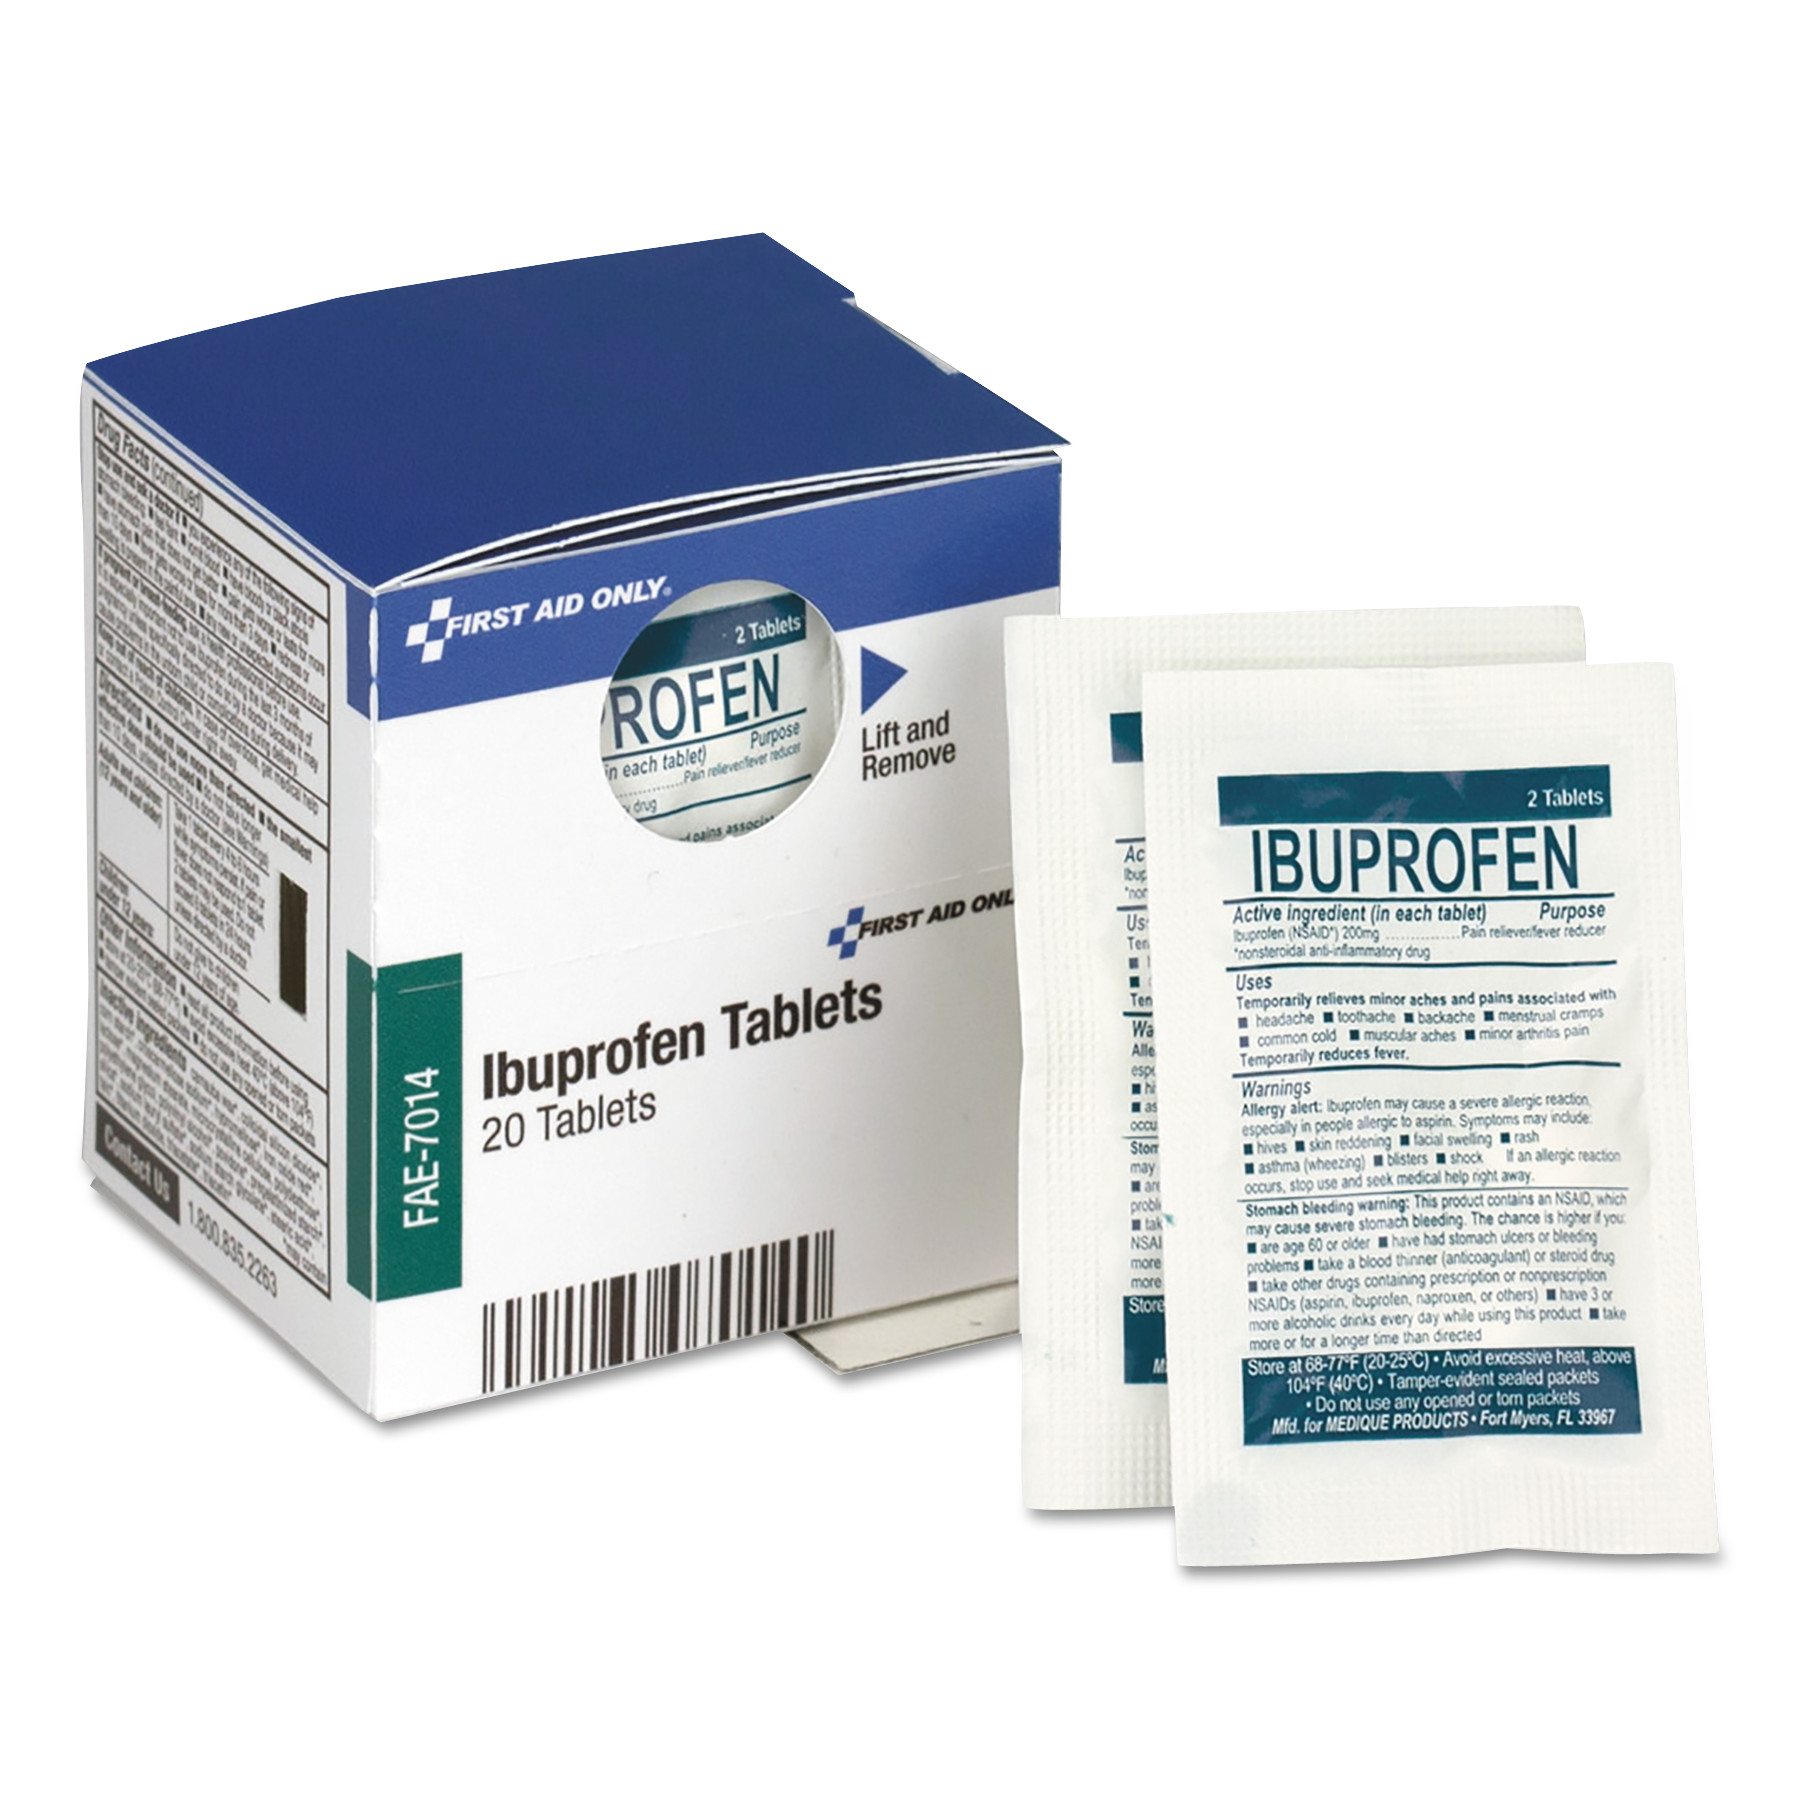 Over the Counter Pain Relief Medication for First Aid